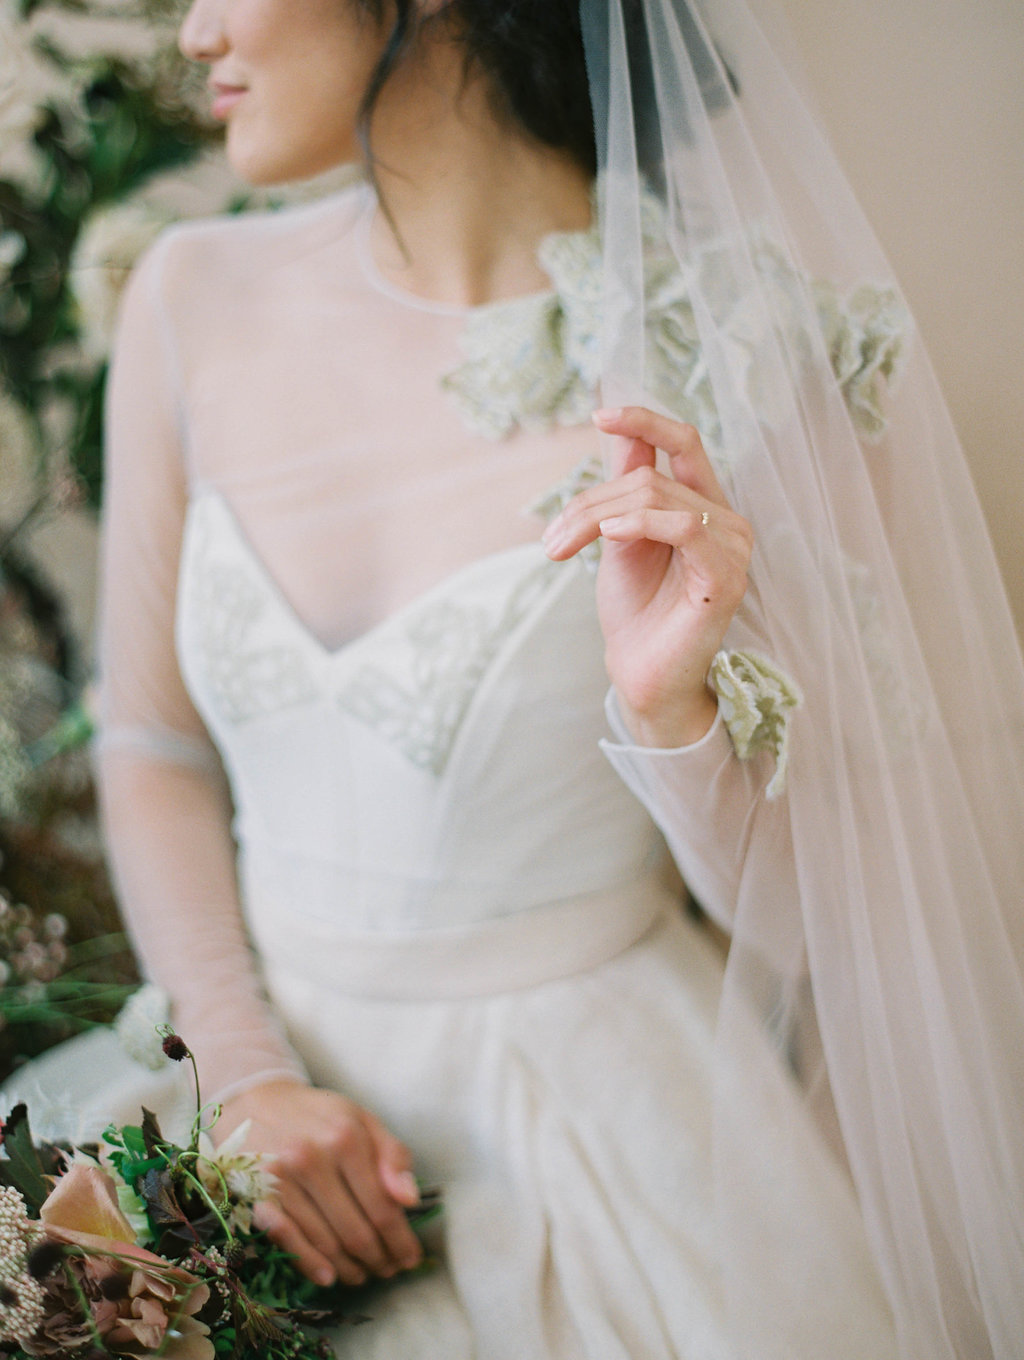 Modern Blush Wedding Inspiration - Wedding Planner and Florist in Dallas